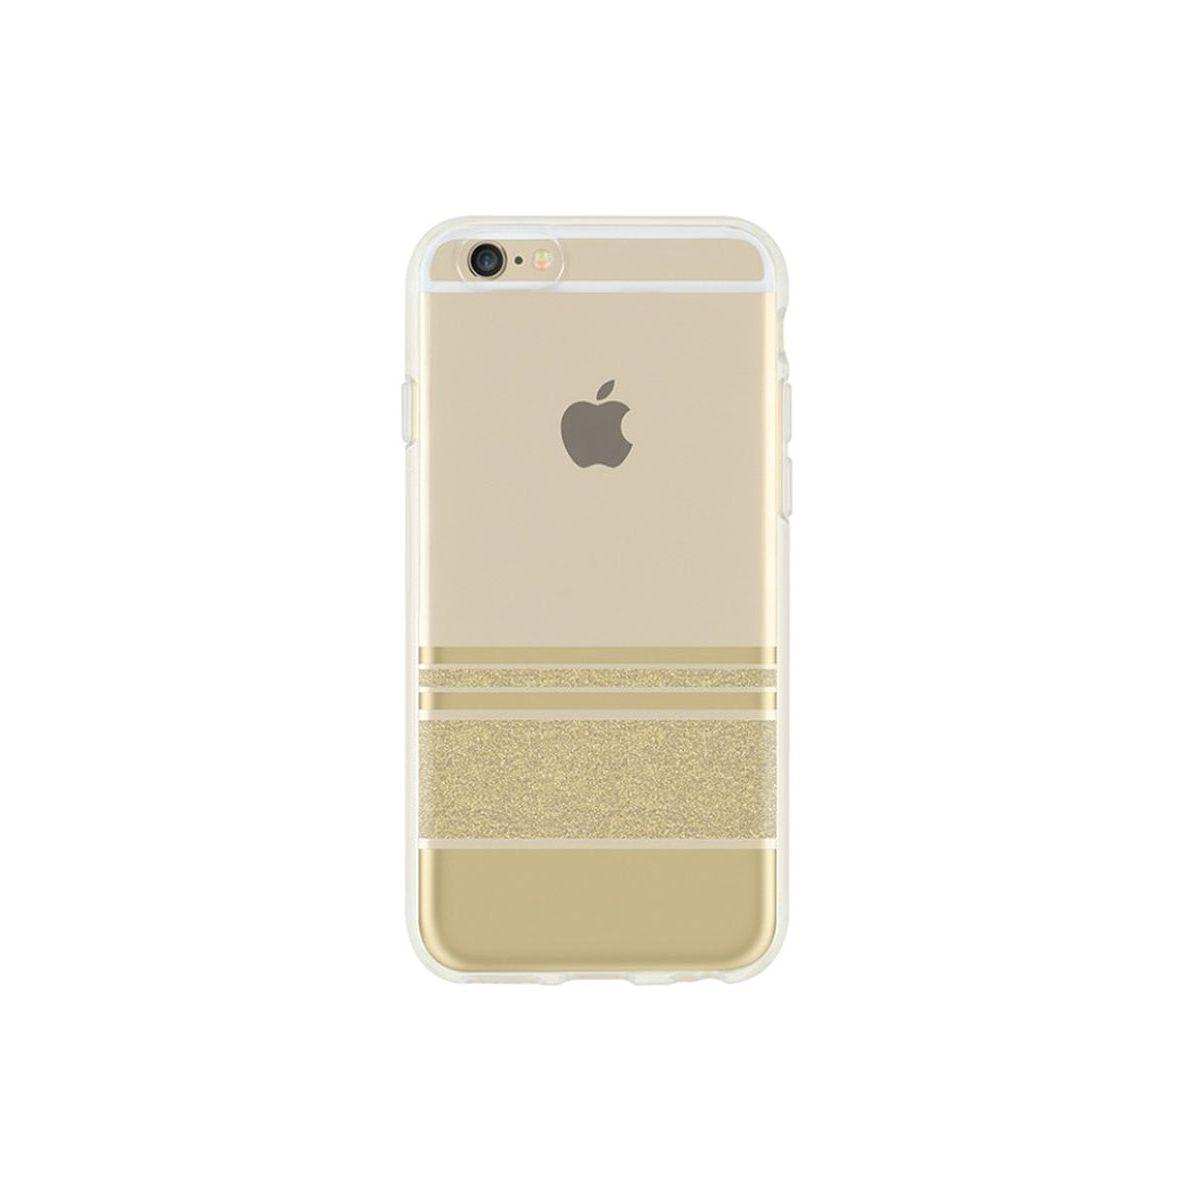 Bumper incipio iphone 6/6s or - 15% de remise immédiate avec le code : multi15 (photo)